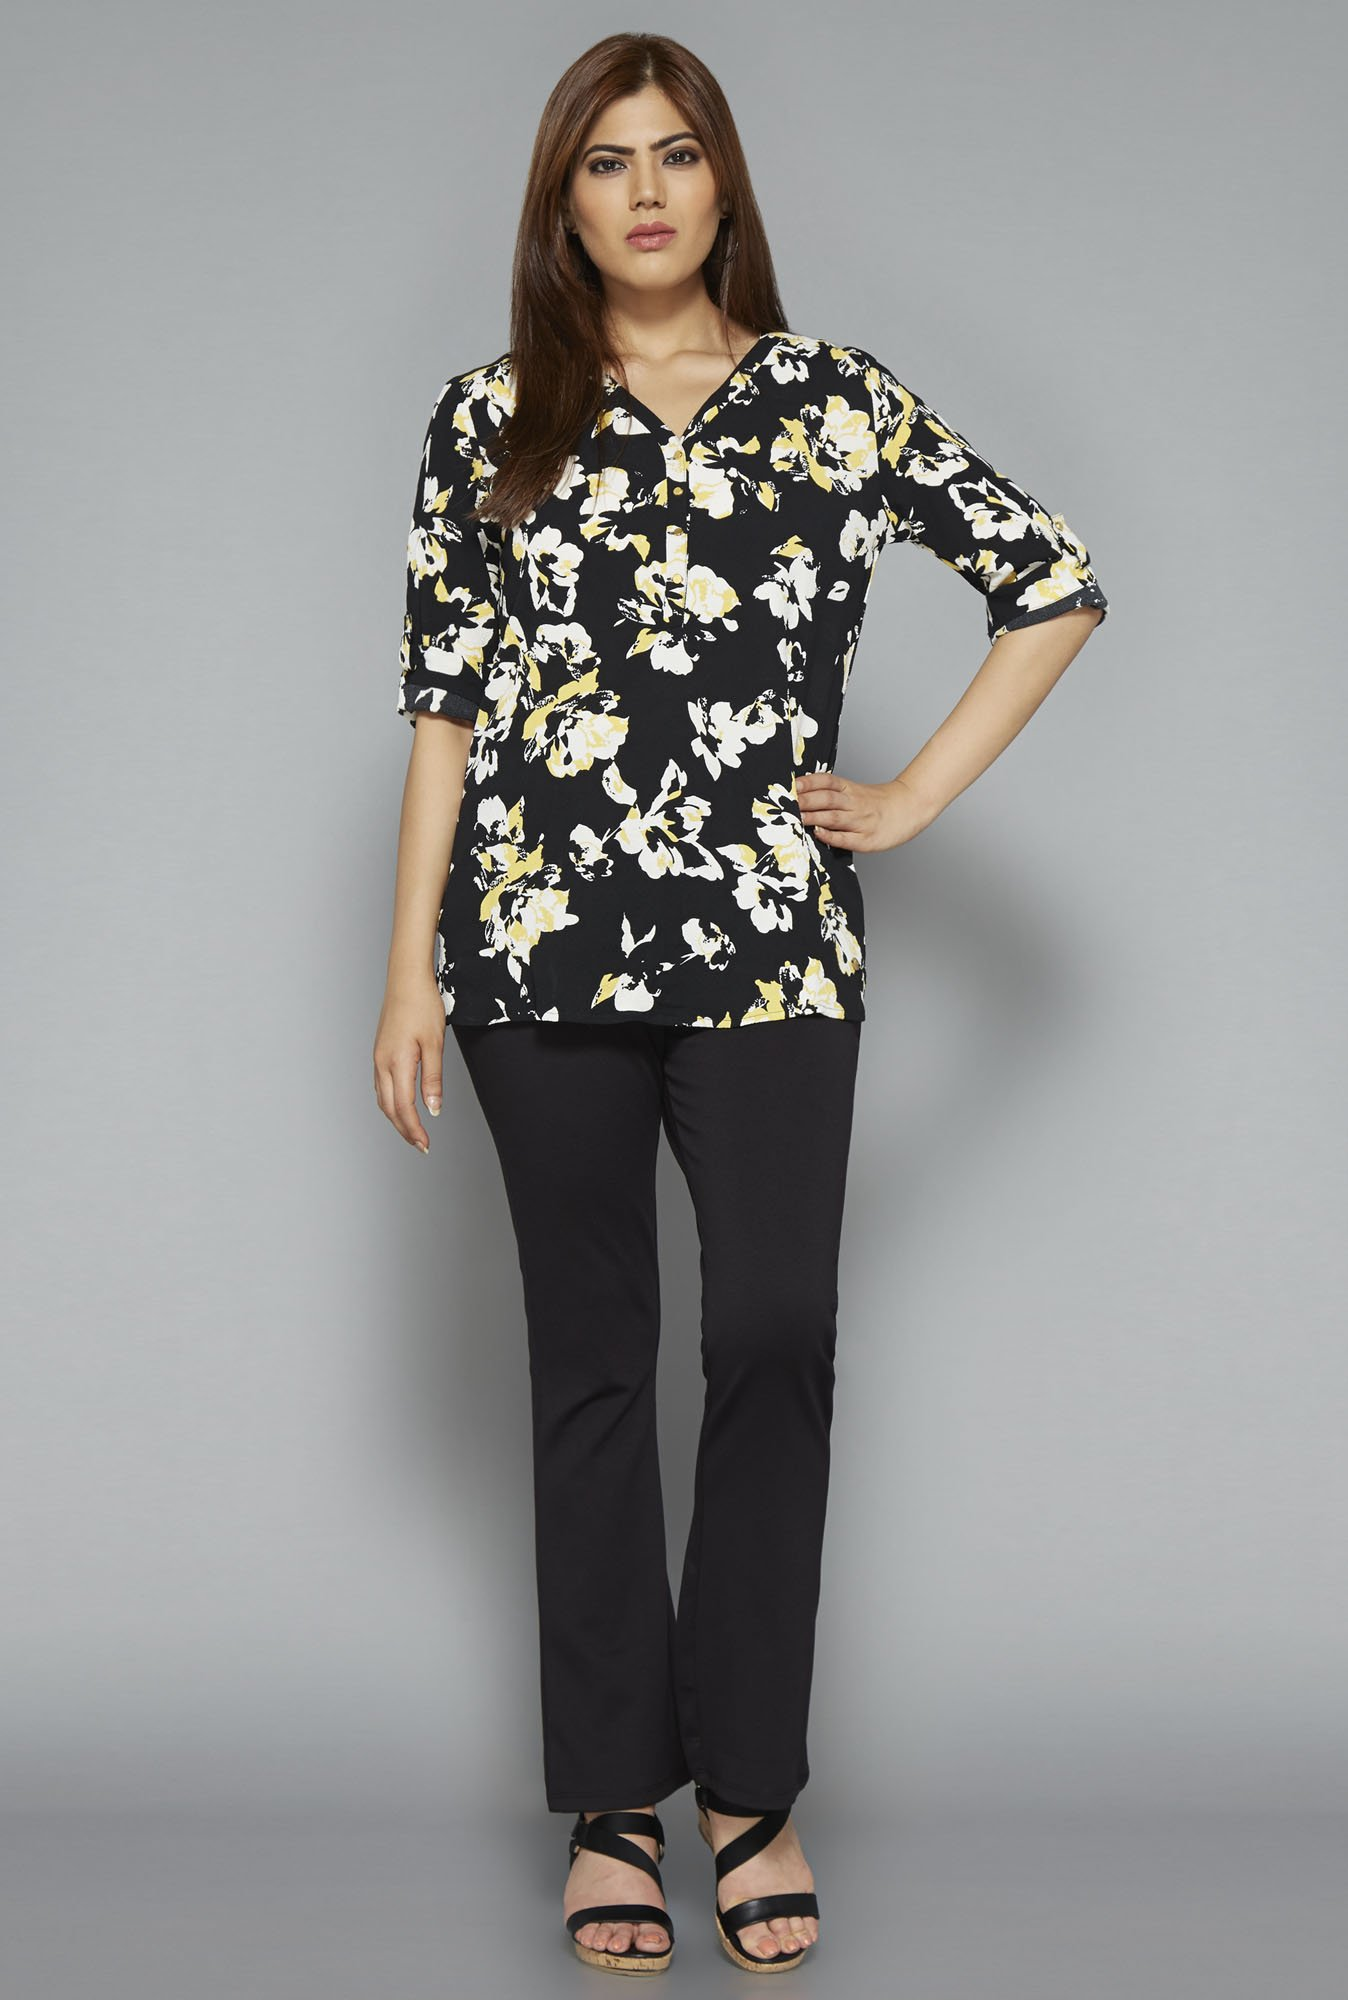 Gia by Westside Black Floral Print Blouse